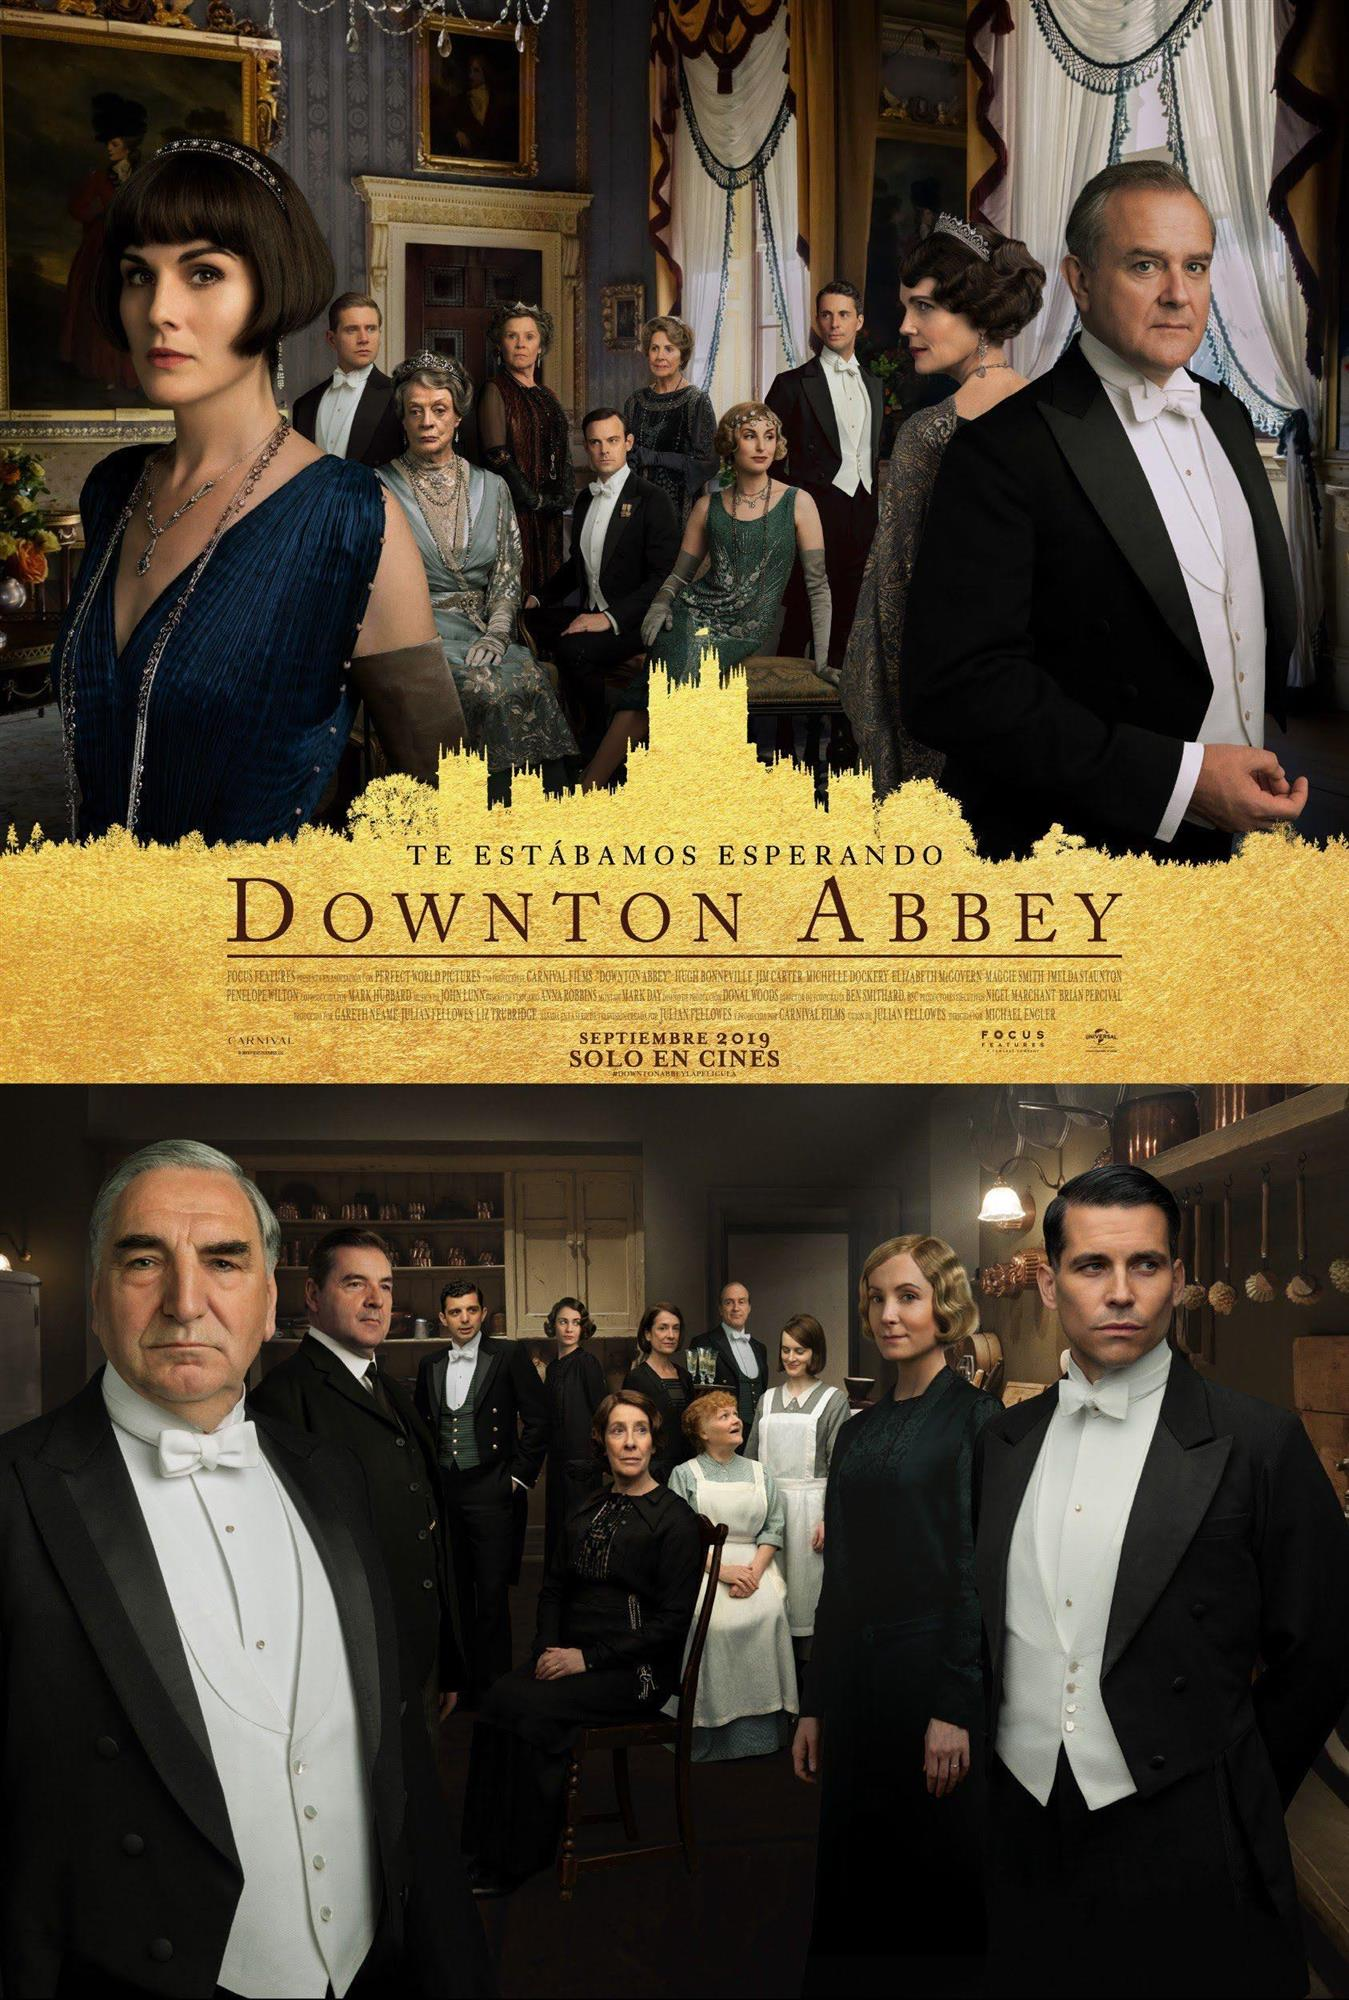 DOWNTON ABBEY(1). DOWNTON ABBEY